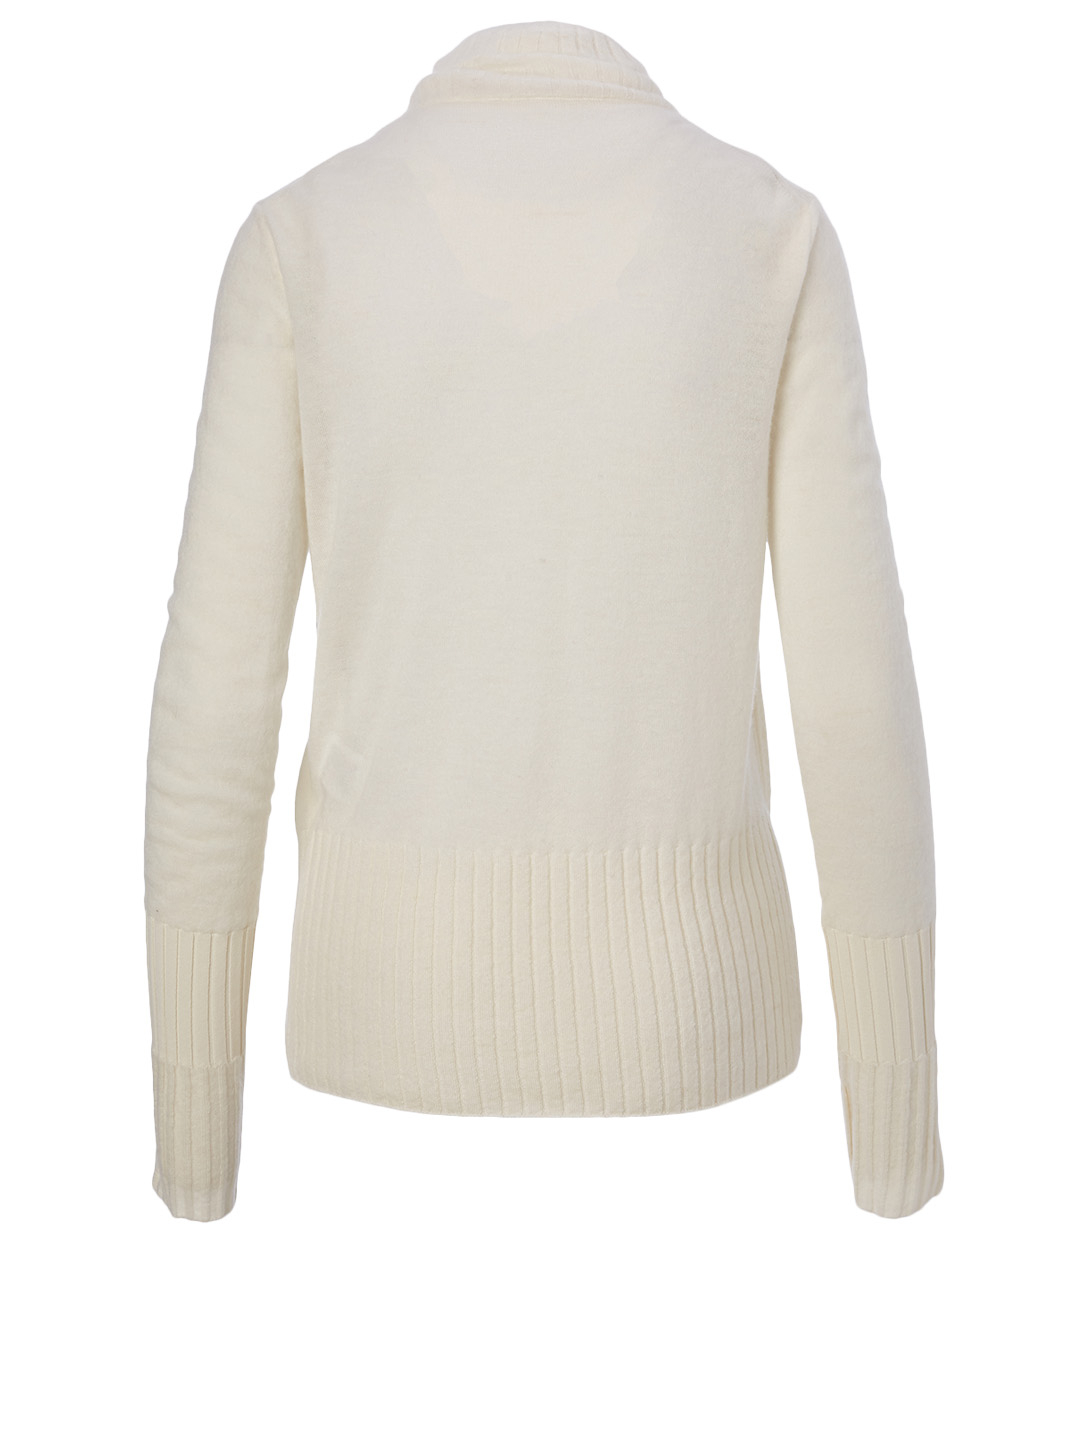 KUHO Wool-Blend Sweater Women's White